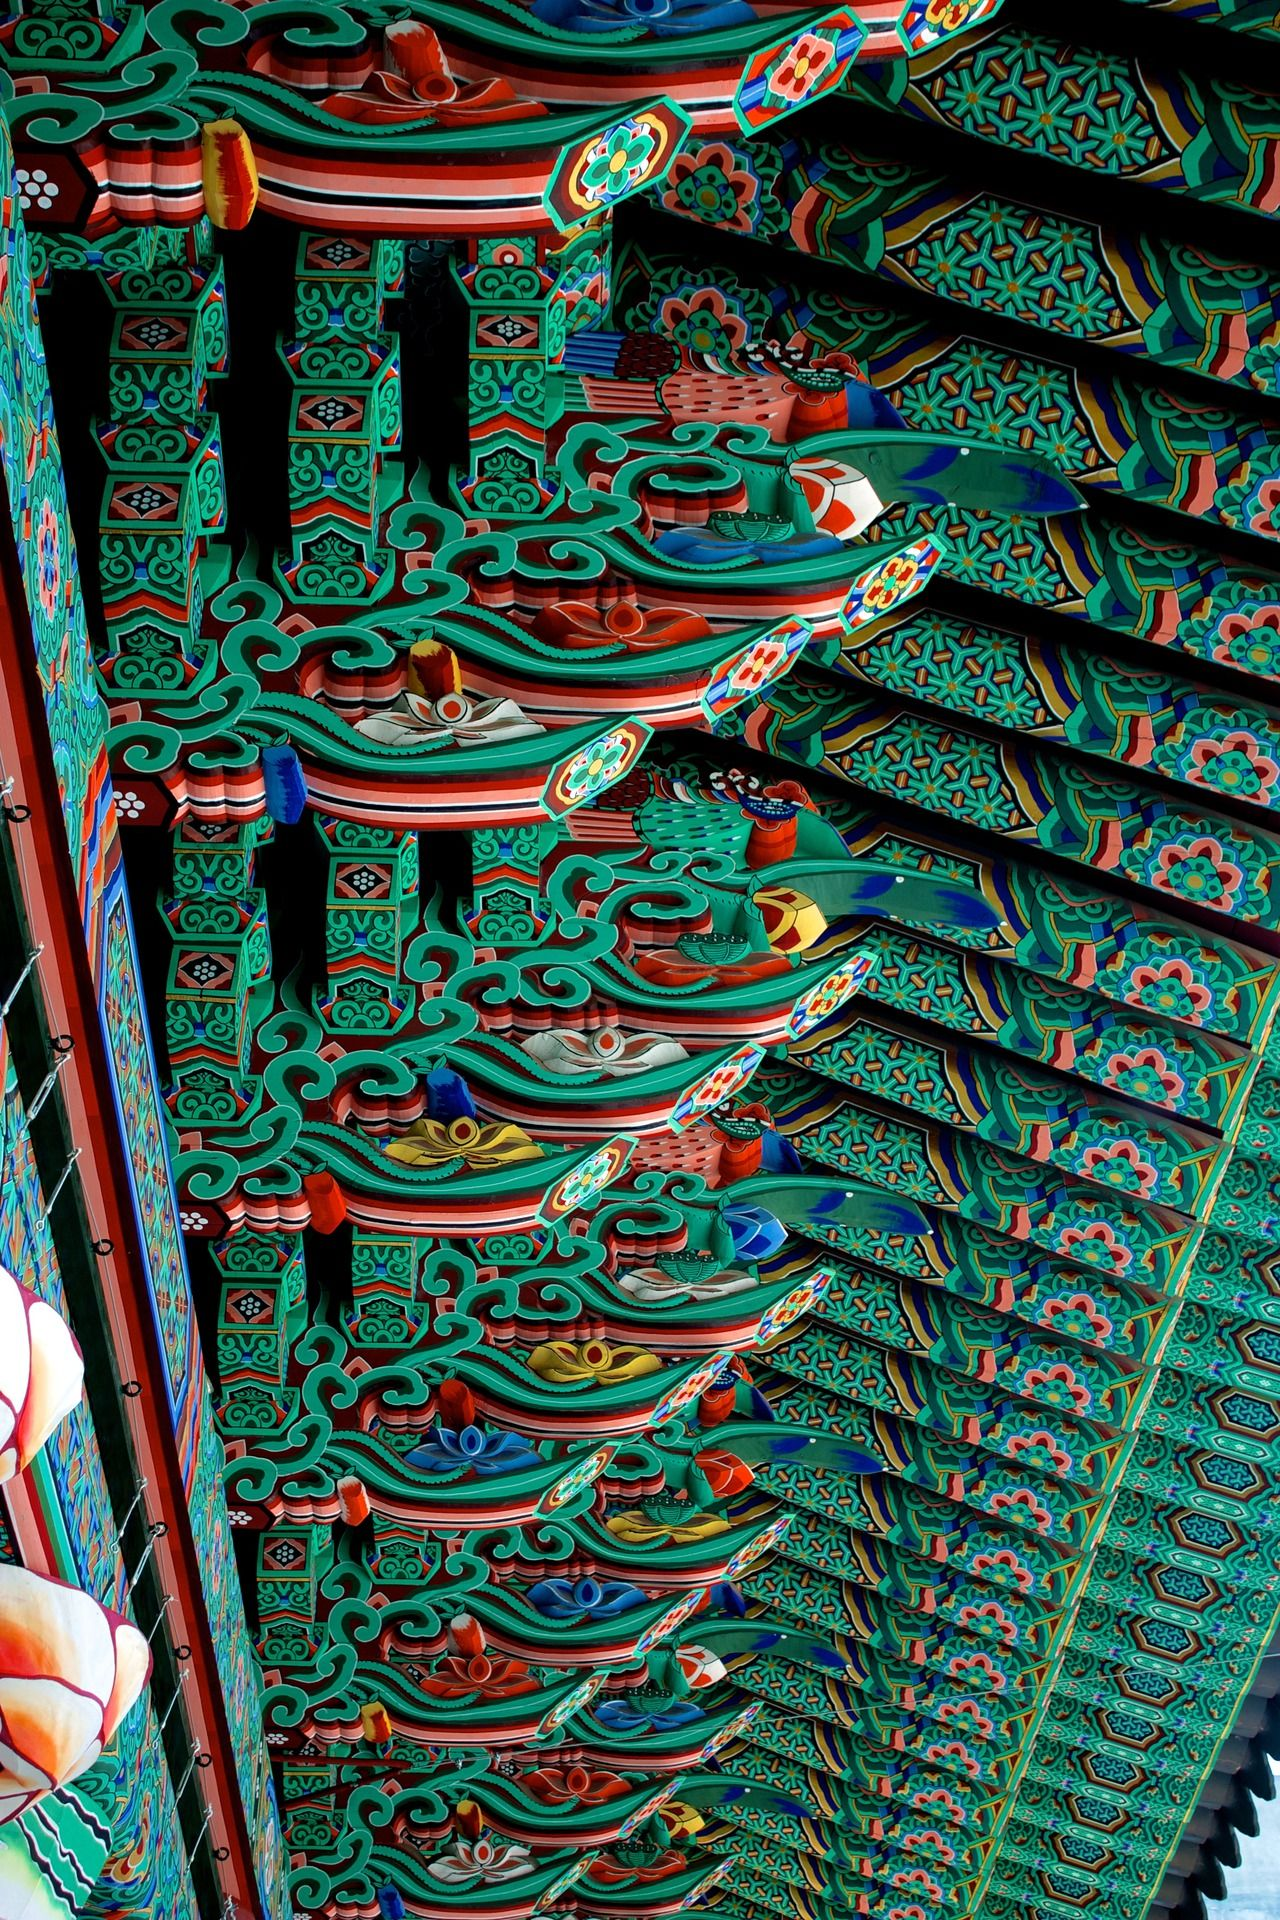 Pin By Hirotani On Favorite Places Spaces Chinese Architecture Asian Architecture Temple